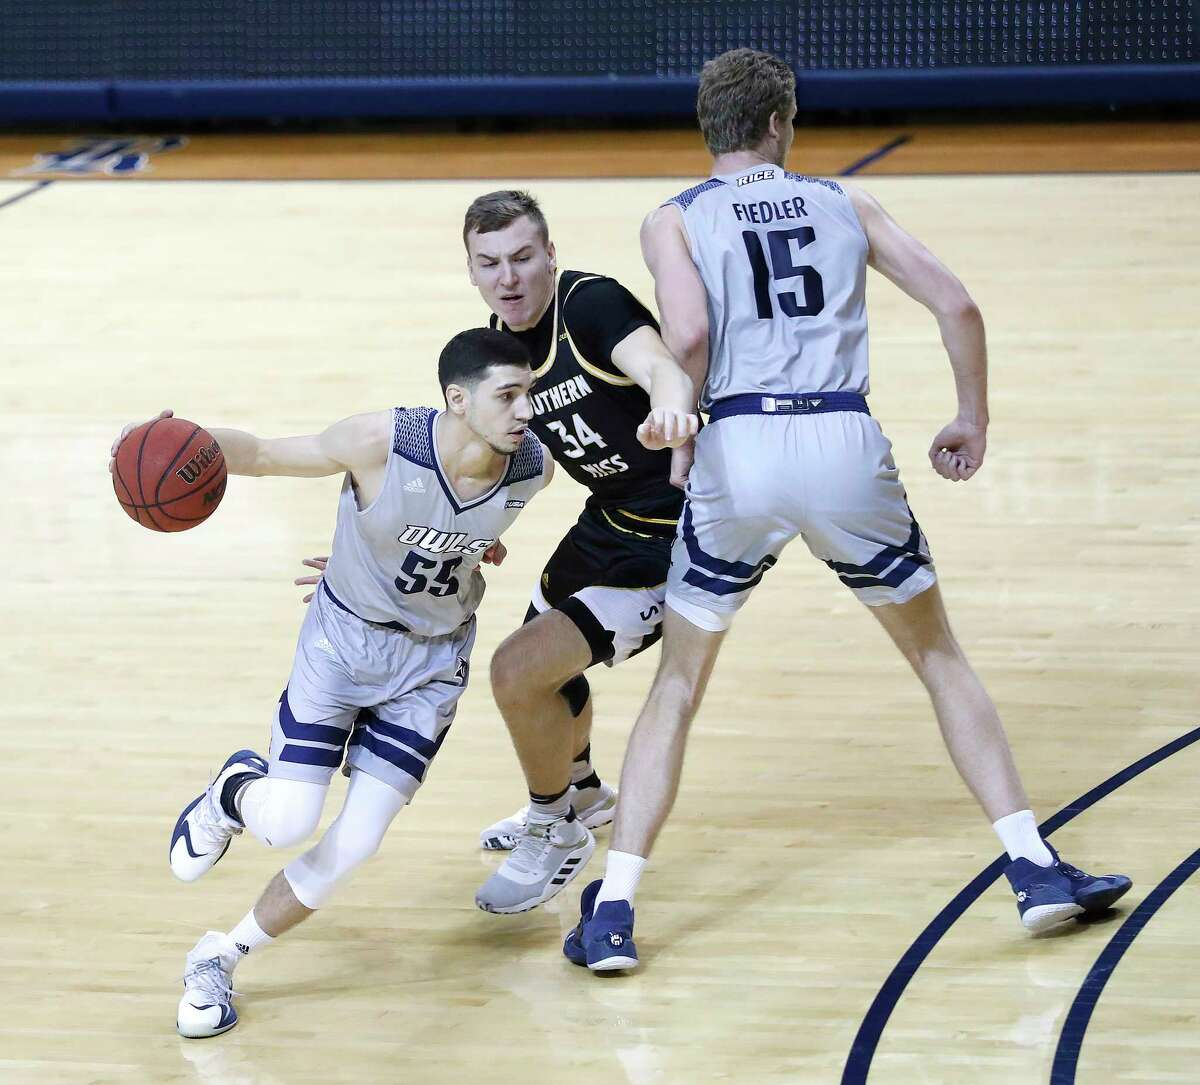 Rice Owls guard Cavit Ege Havsa (55) works past Southern Miss Golden Eagles forward Artur Konontsuk (34) as Owls forward Max Fiedler (15) set the pick during the first half of an NCAA men's basketball game at Tudor Field House in Houston, Friday, Feb. 5.